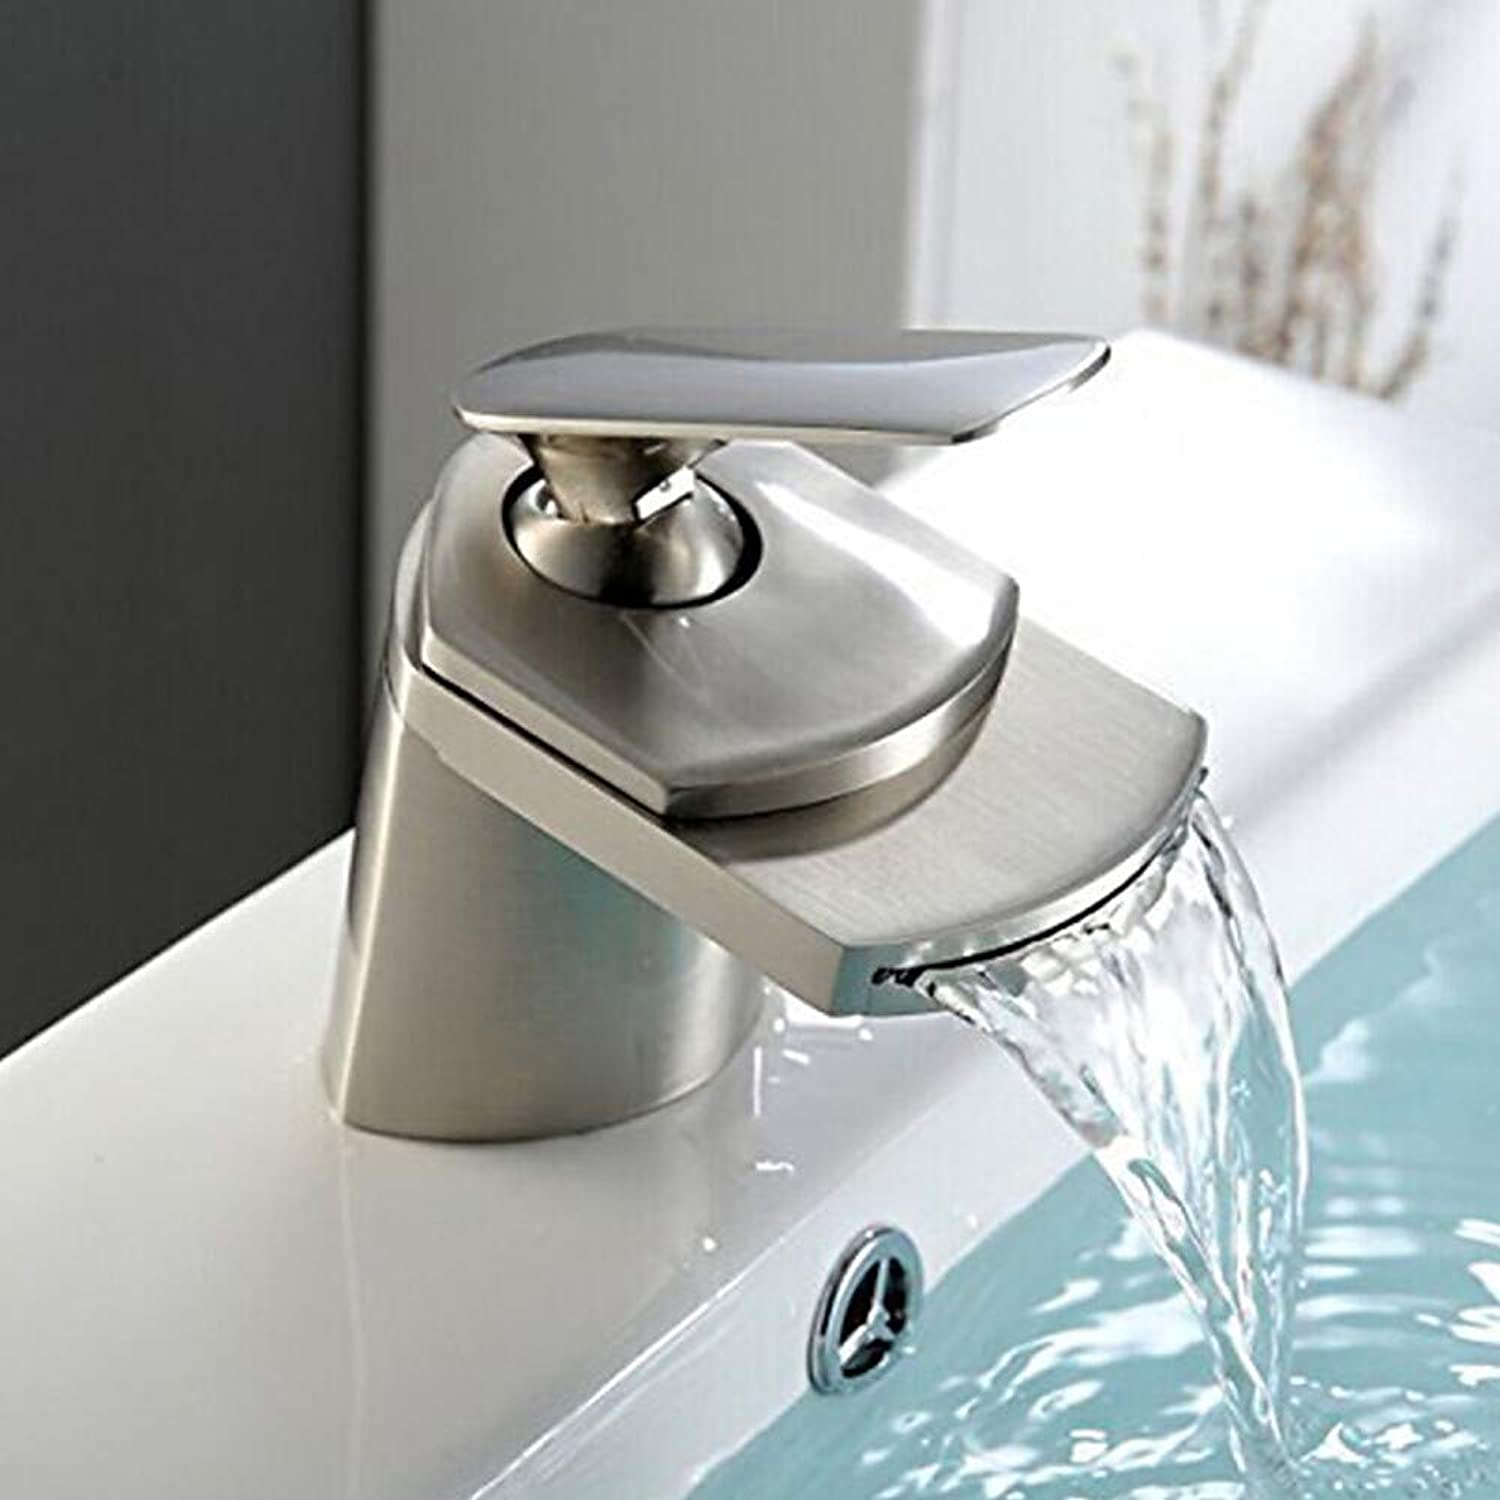 Novopus Bathroom faucet:Contemporary Centerset Waterfall Ceramic Valve Single Handle One Hole Nickel Brushed, Bathroom Sink Faucet,2